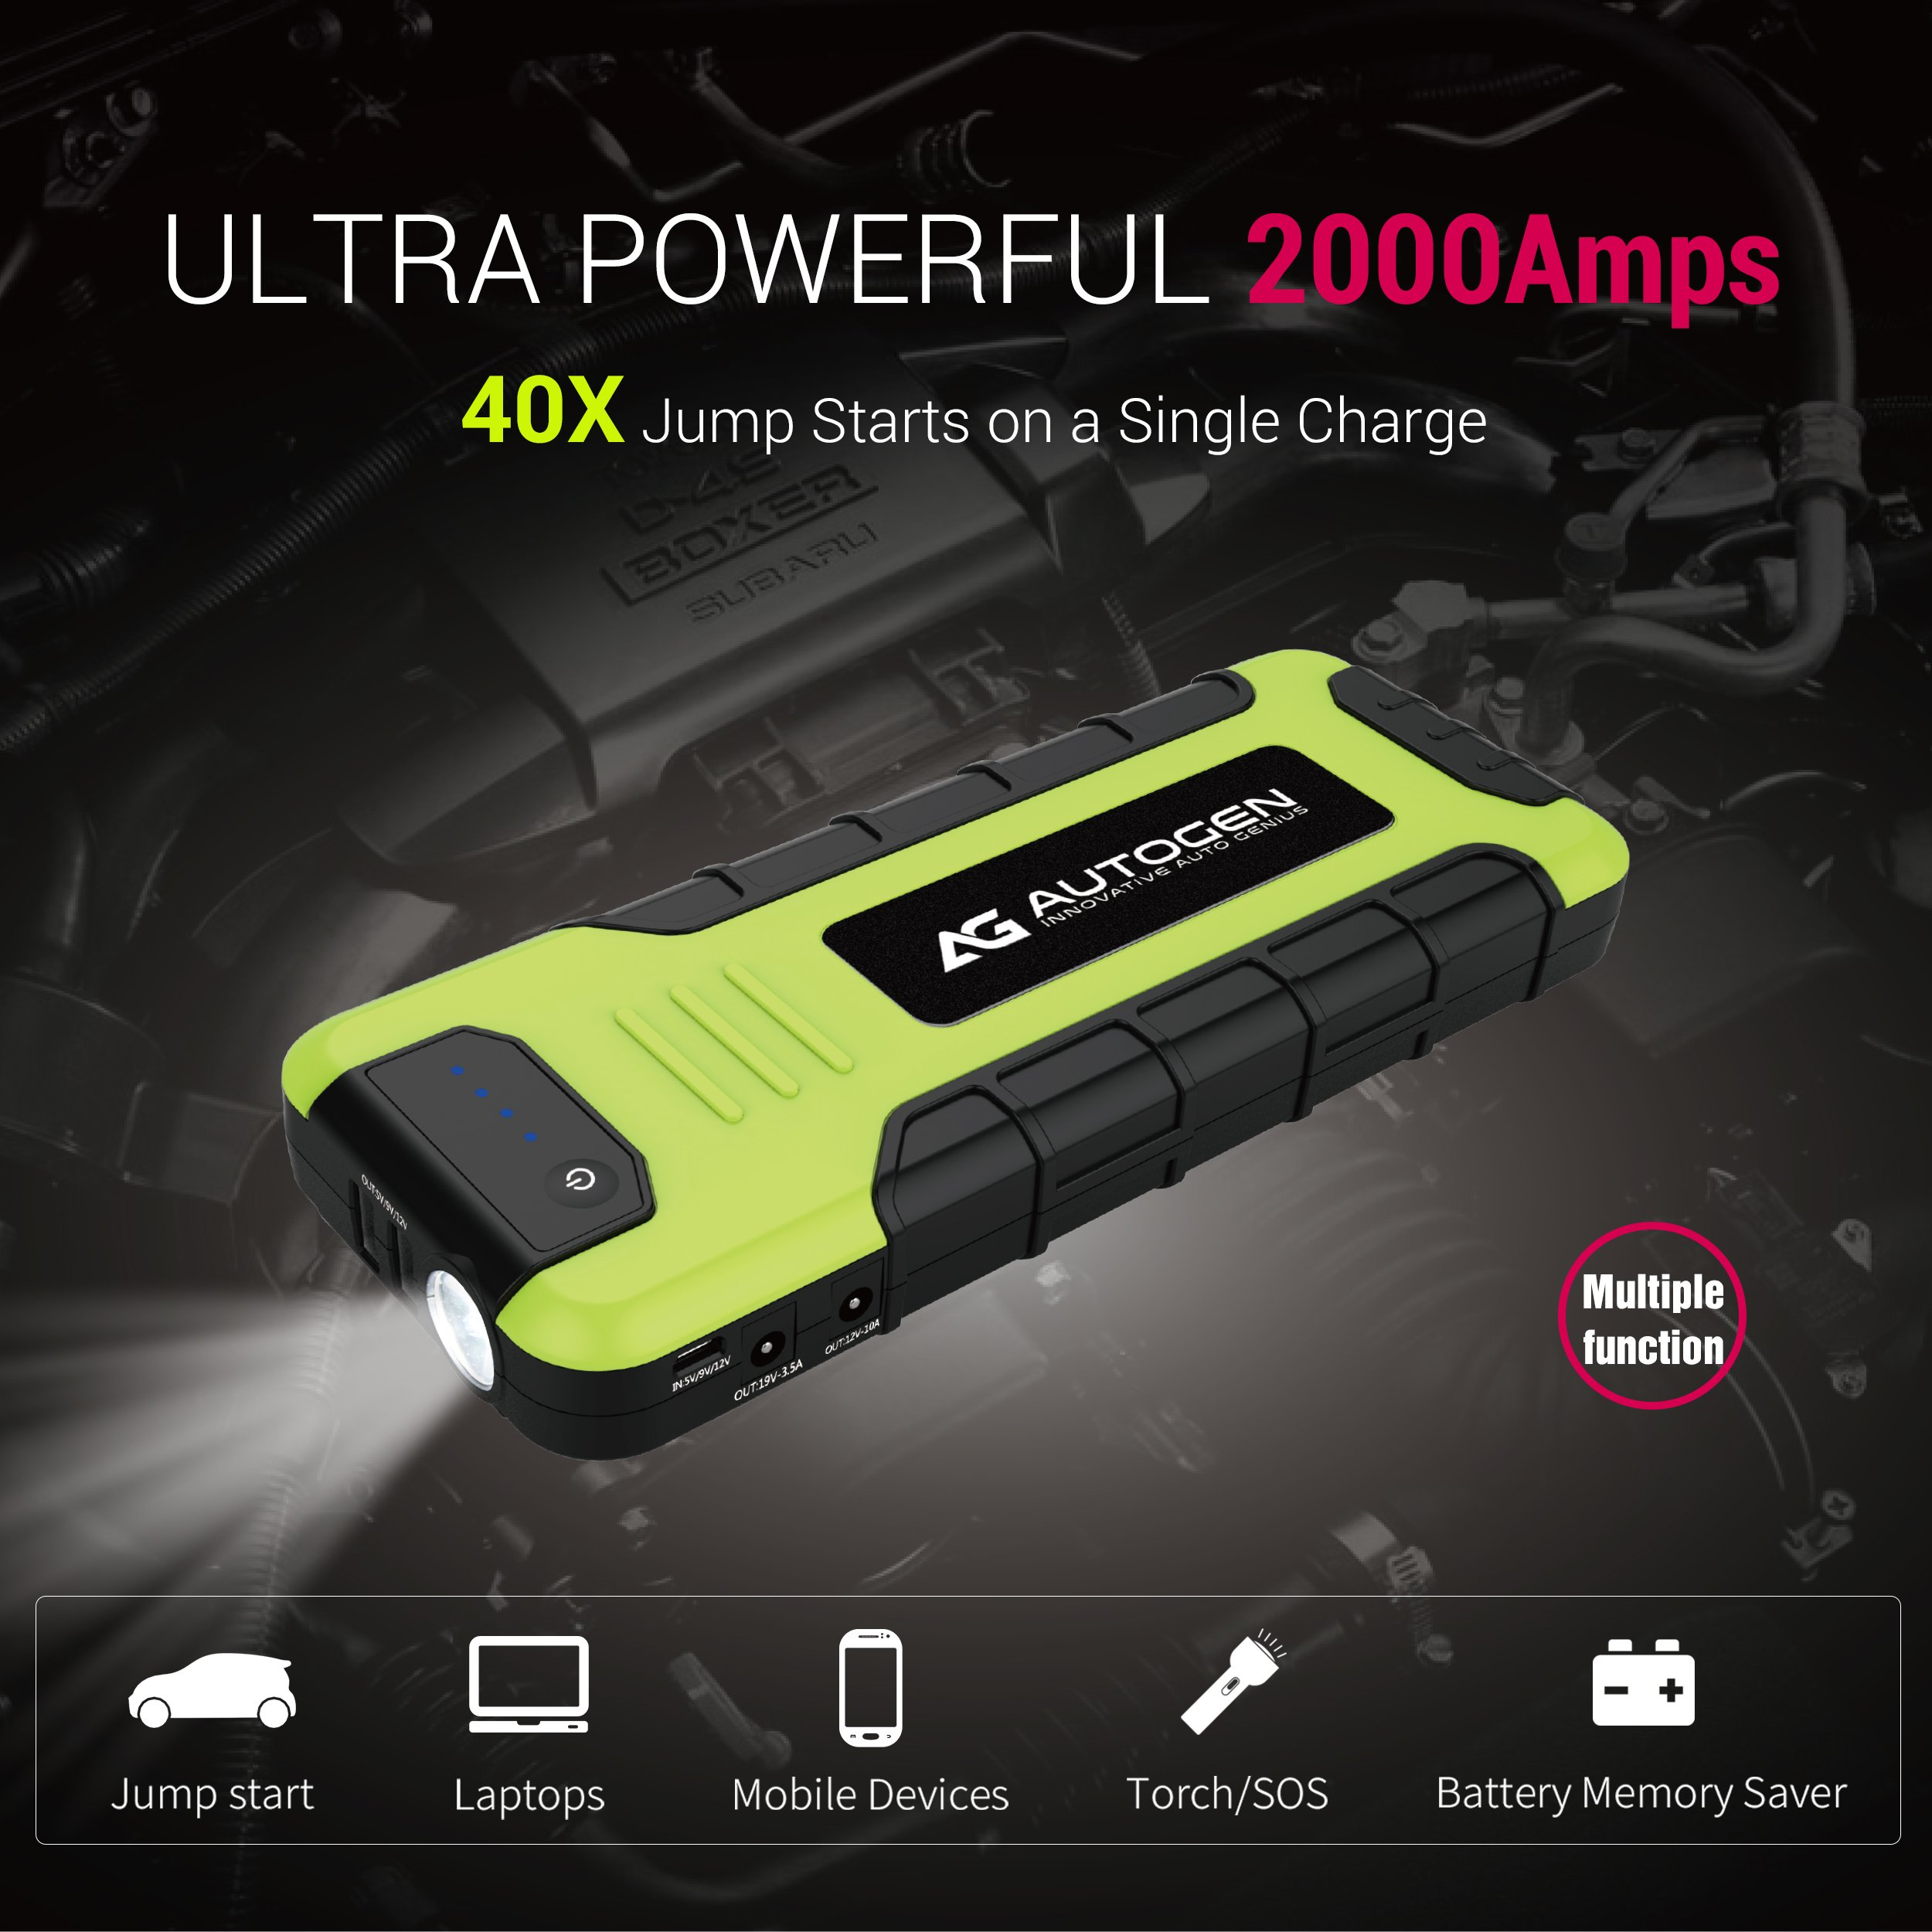 AUTOGEN 2000A Peak Portable Jump Starter for Vehicles (up to 8.0L Gas or 6.5L Diesel) & Quick Charge 3.0 Power Charger, with Mistake-Proof Intelligent Clamps for Cars Boats RVs & Mowers by AUTOGEN (Image #2)